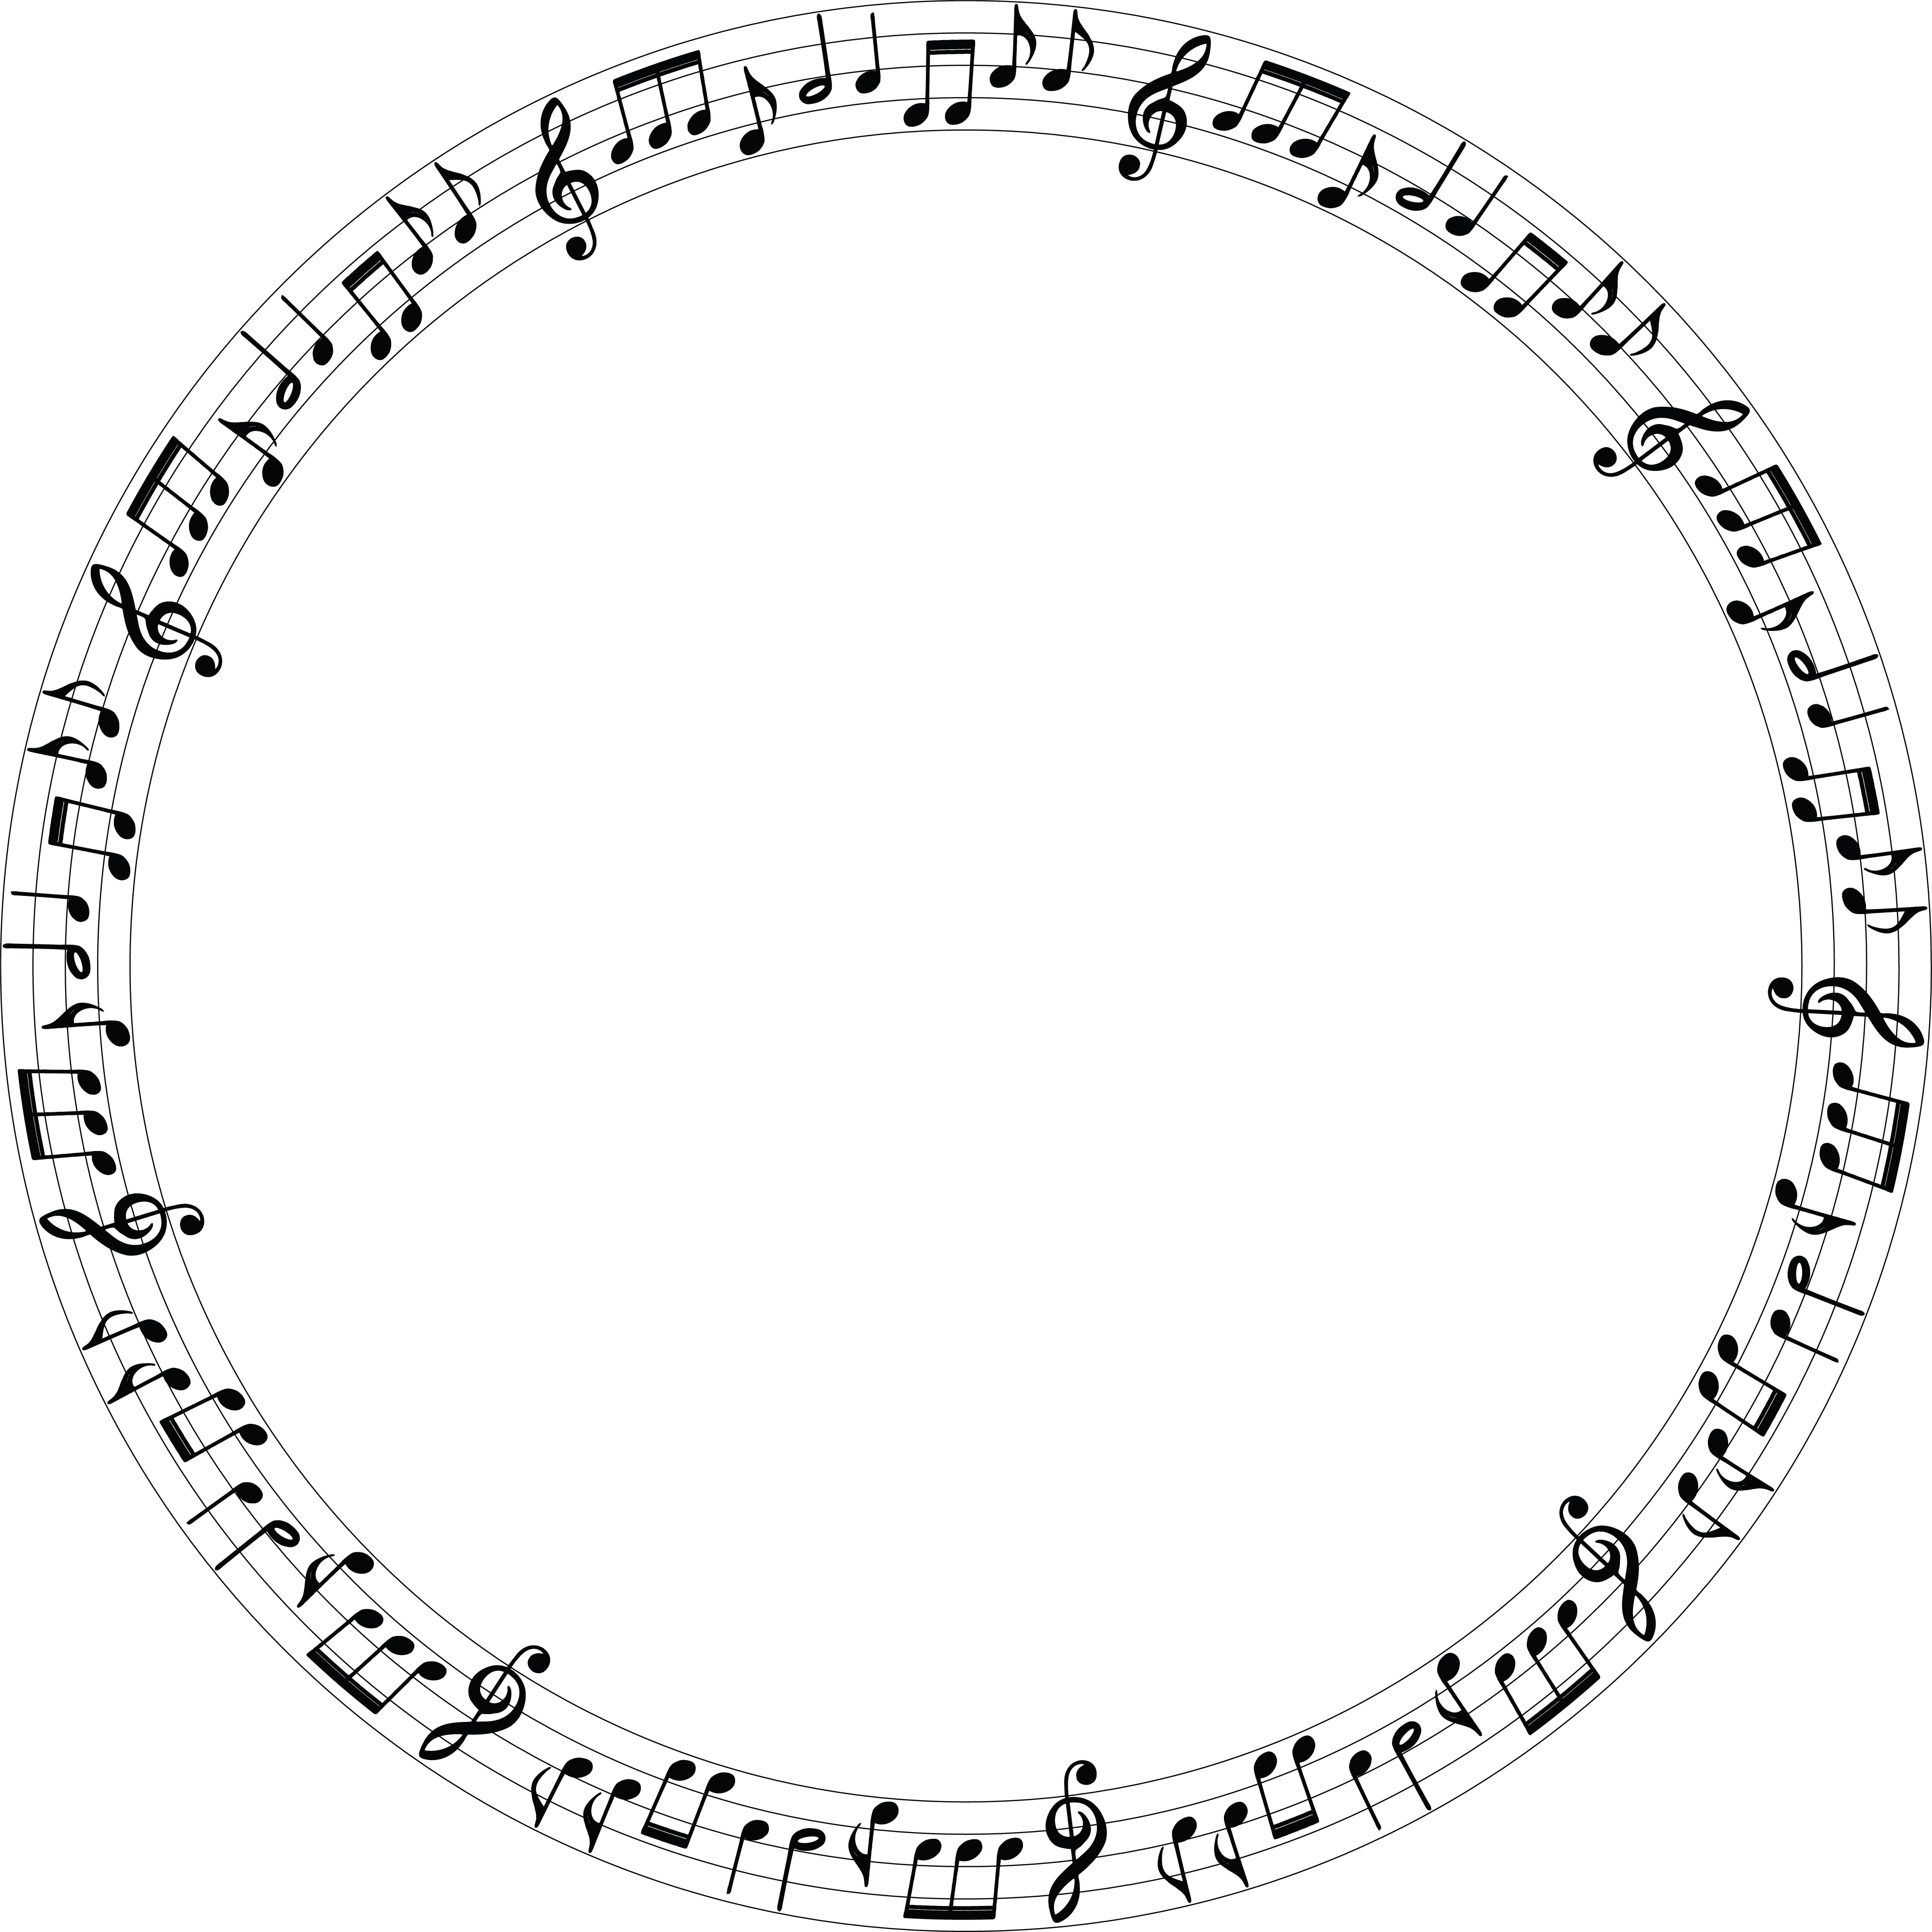 free clipart of a music note frame - Music Picture Frame